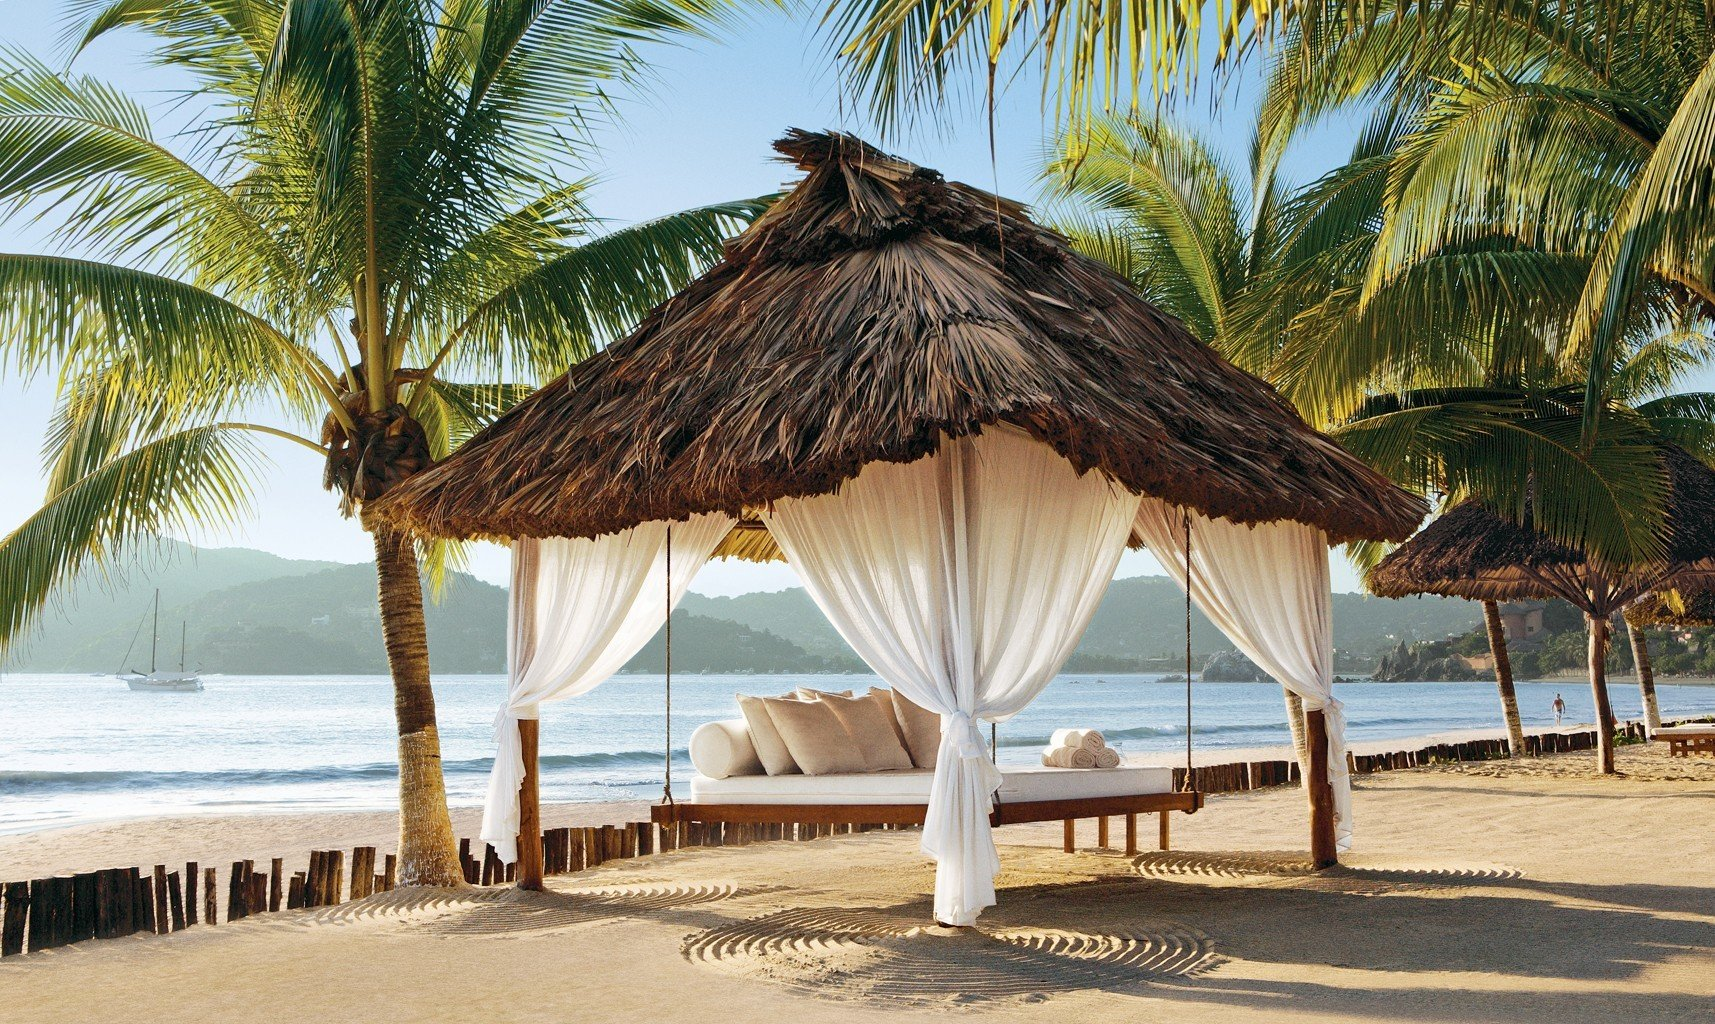 Trip Ideas outdoor tree Beach water umbrella chair palm plant caribbean vacation Resort tropics arecales Sea palm family Pool sandy Ocean lawn hut sand shore lined shade line